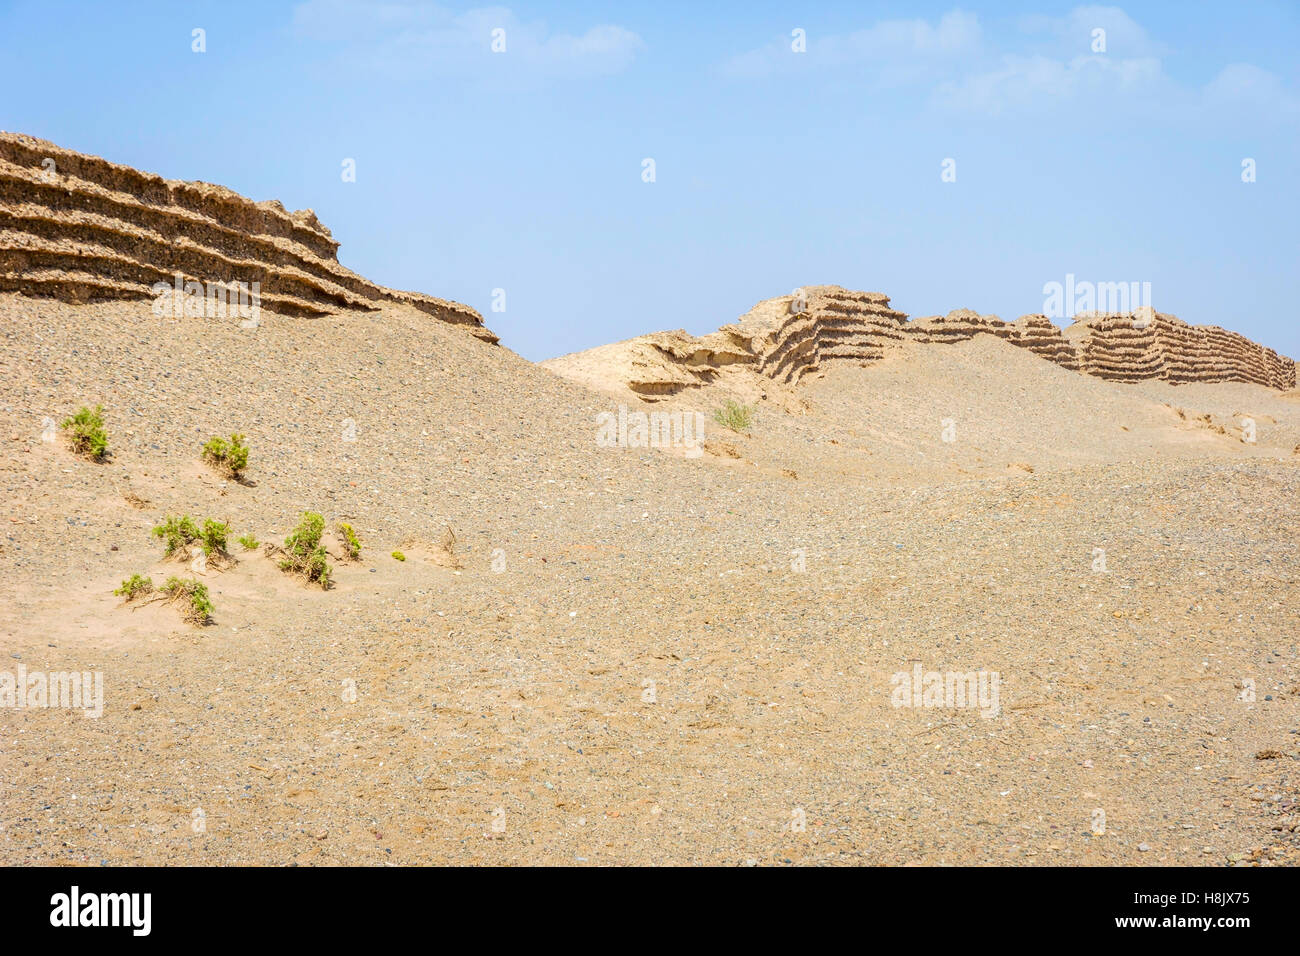 Great Wall Of China Detail Stock Photos & Great Wall Of China Detail ...